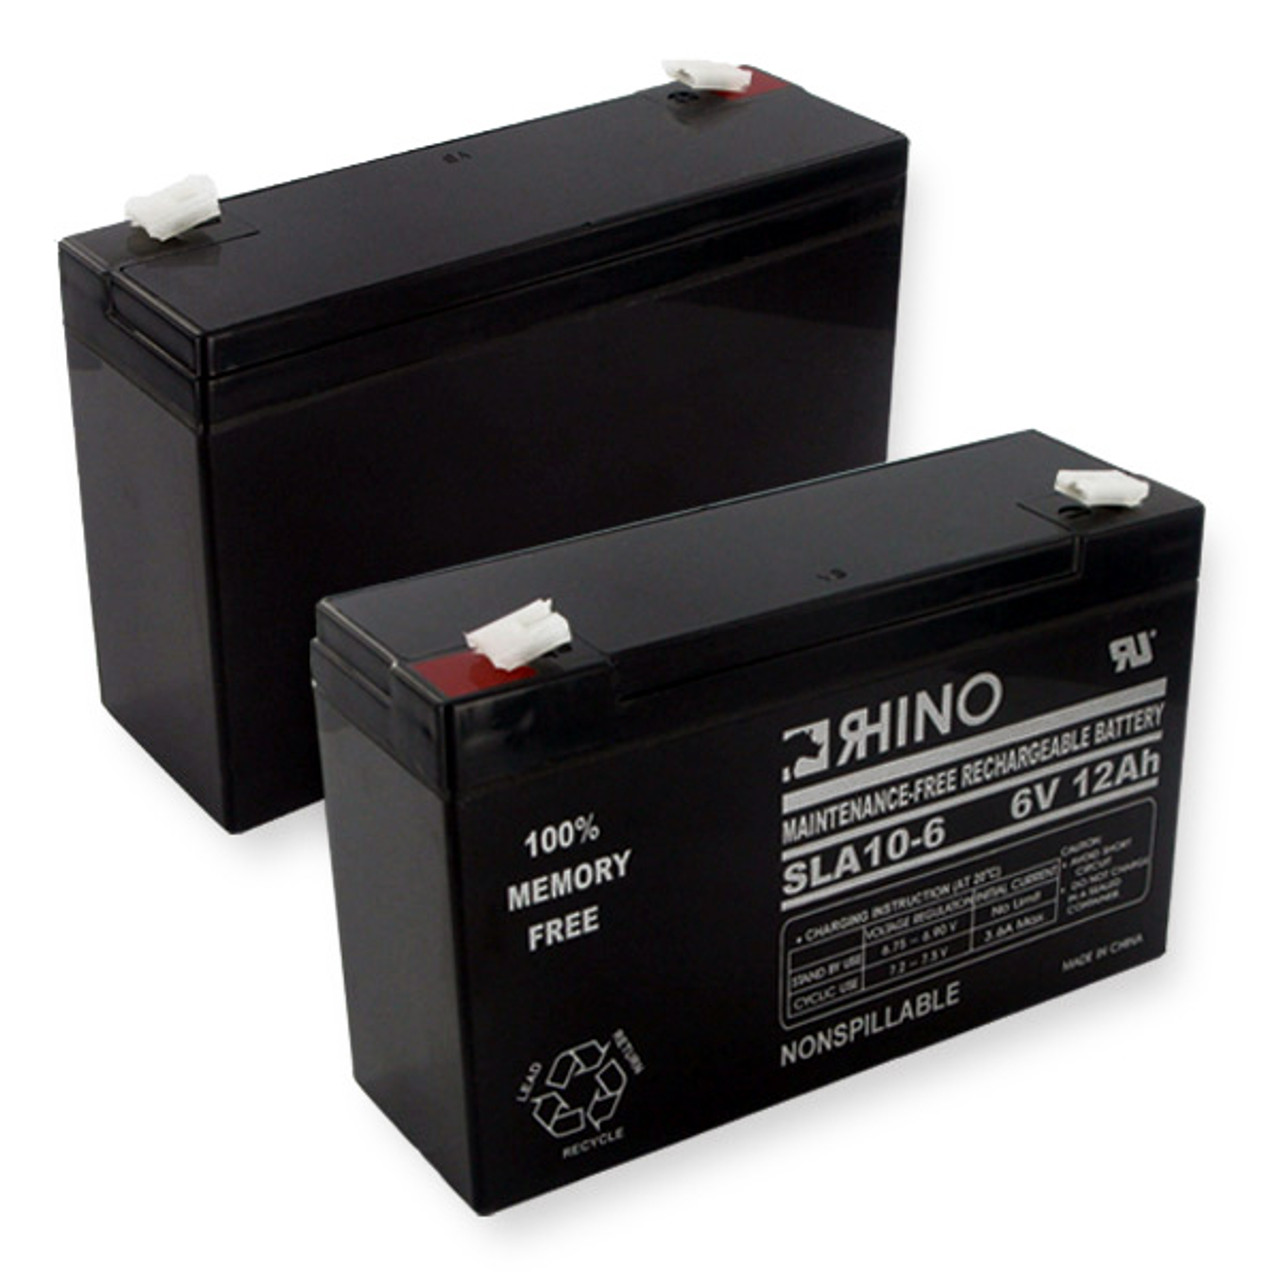 LITHONIA ELB0610 battery (replacement)